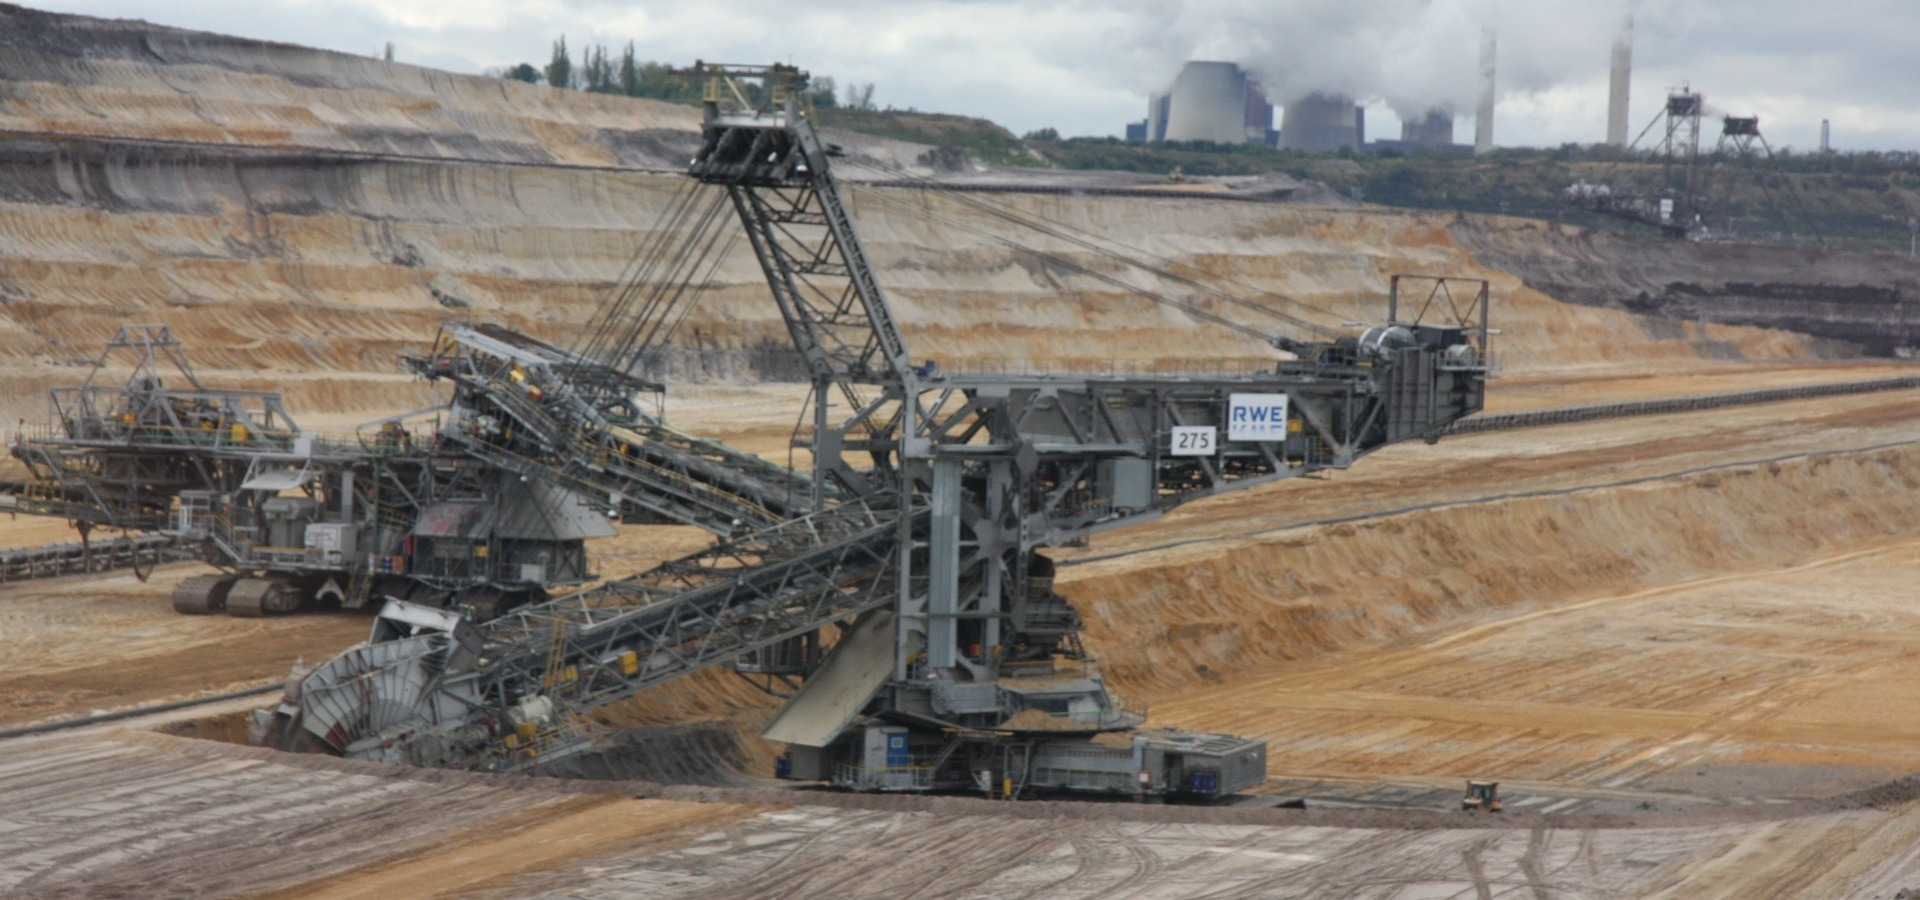 The German coal company RWE mines lignite. The phase-out of coal will change a lot, especially for the former coal workers.